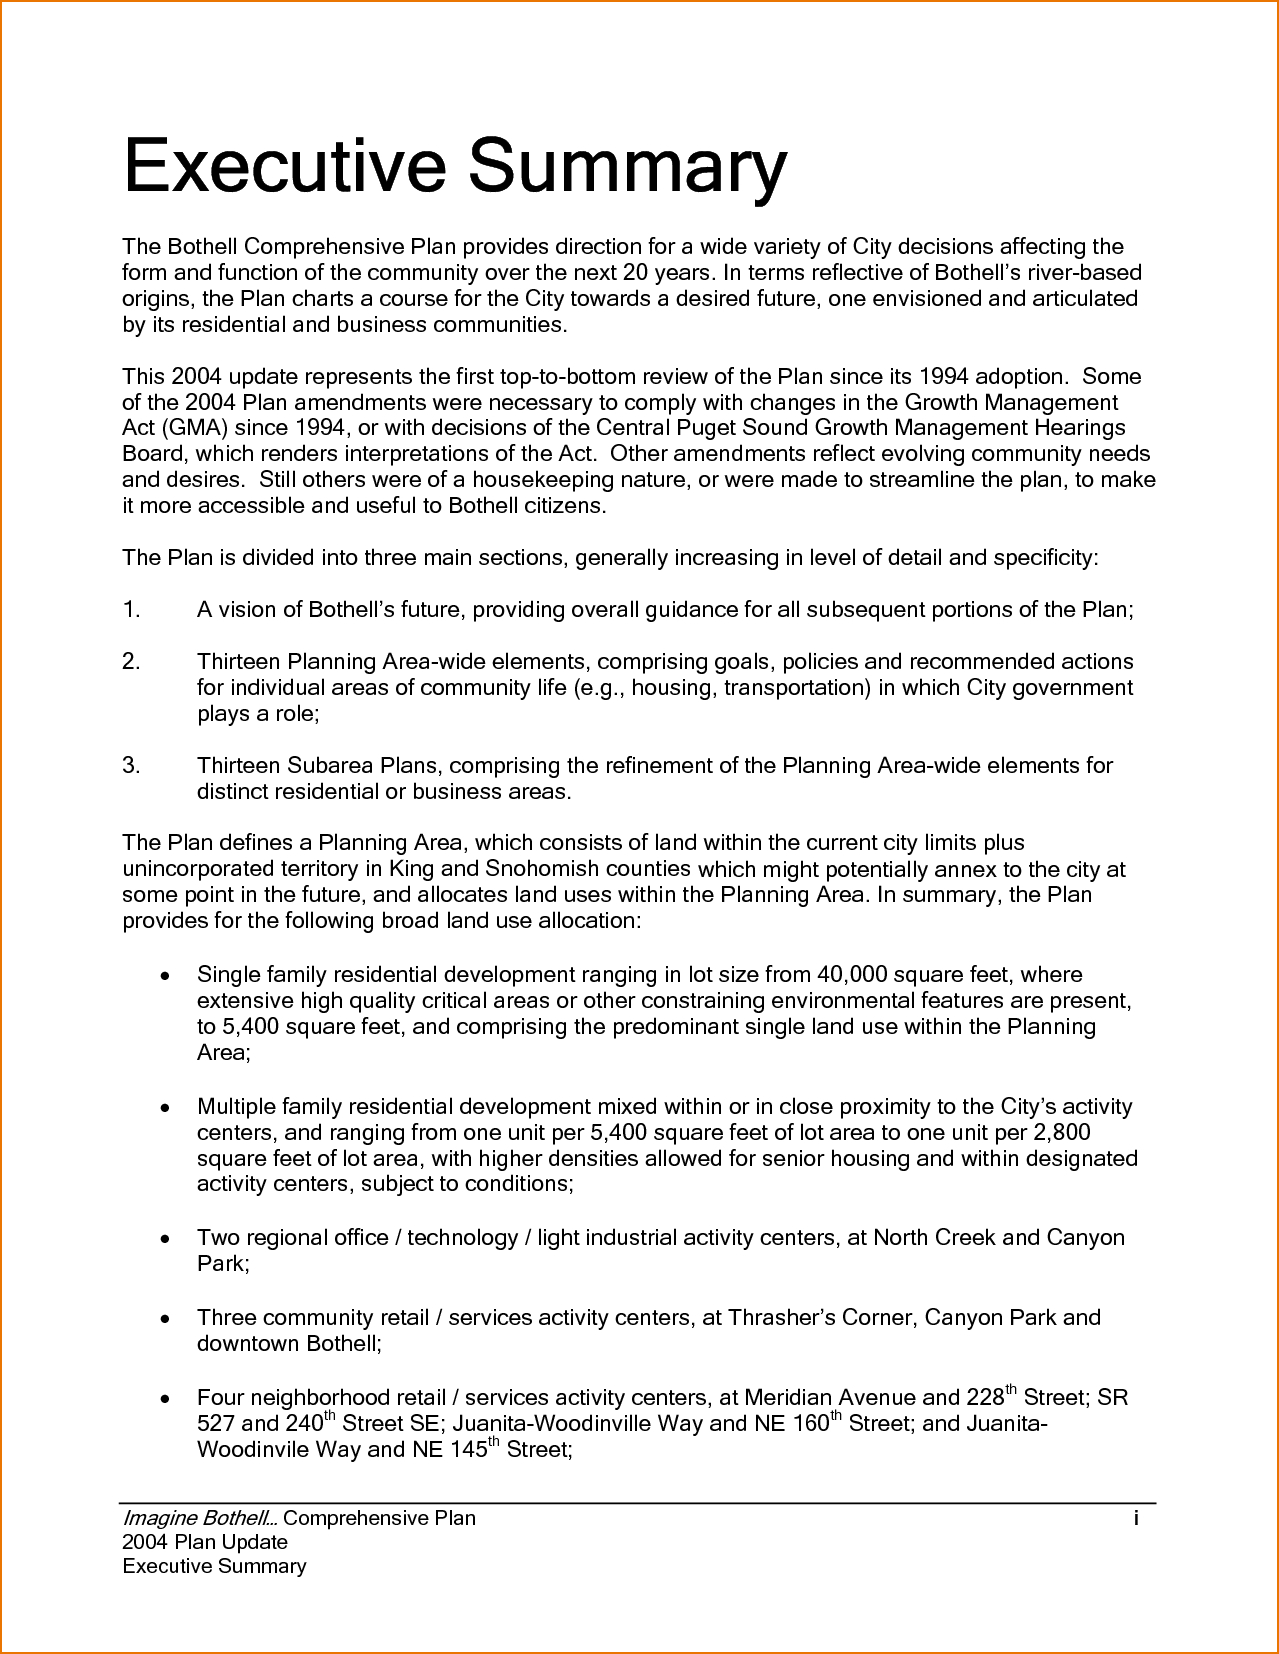 Executive Summary Example Incident Report Template Sample With Regard To Incident Summary Report Template